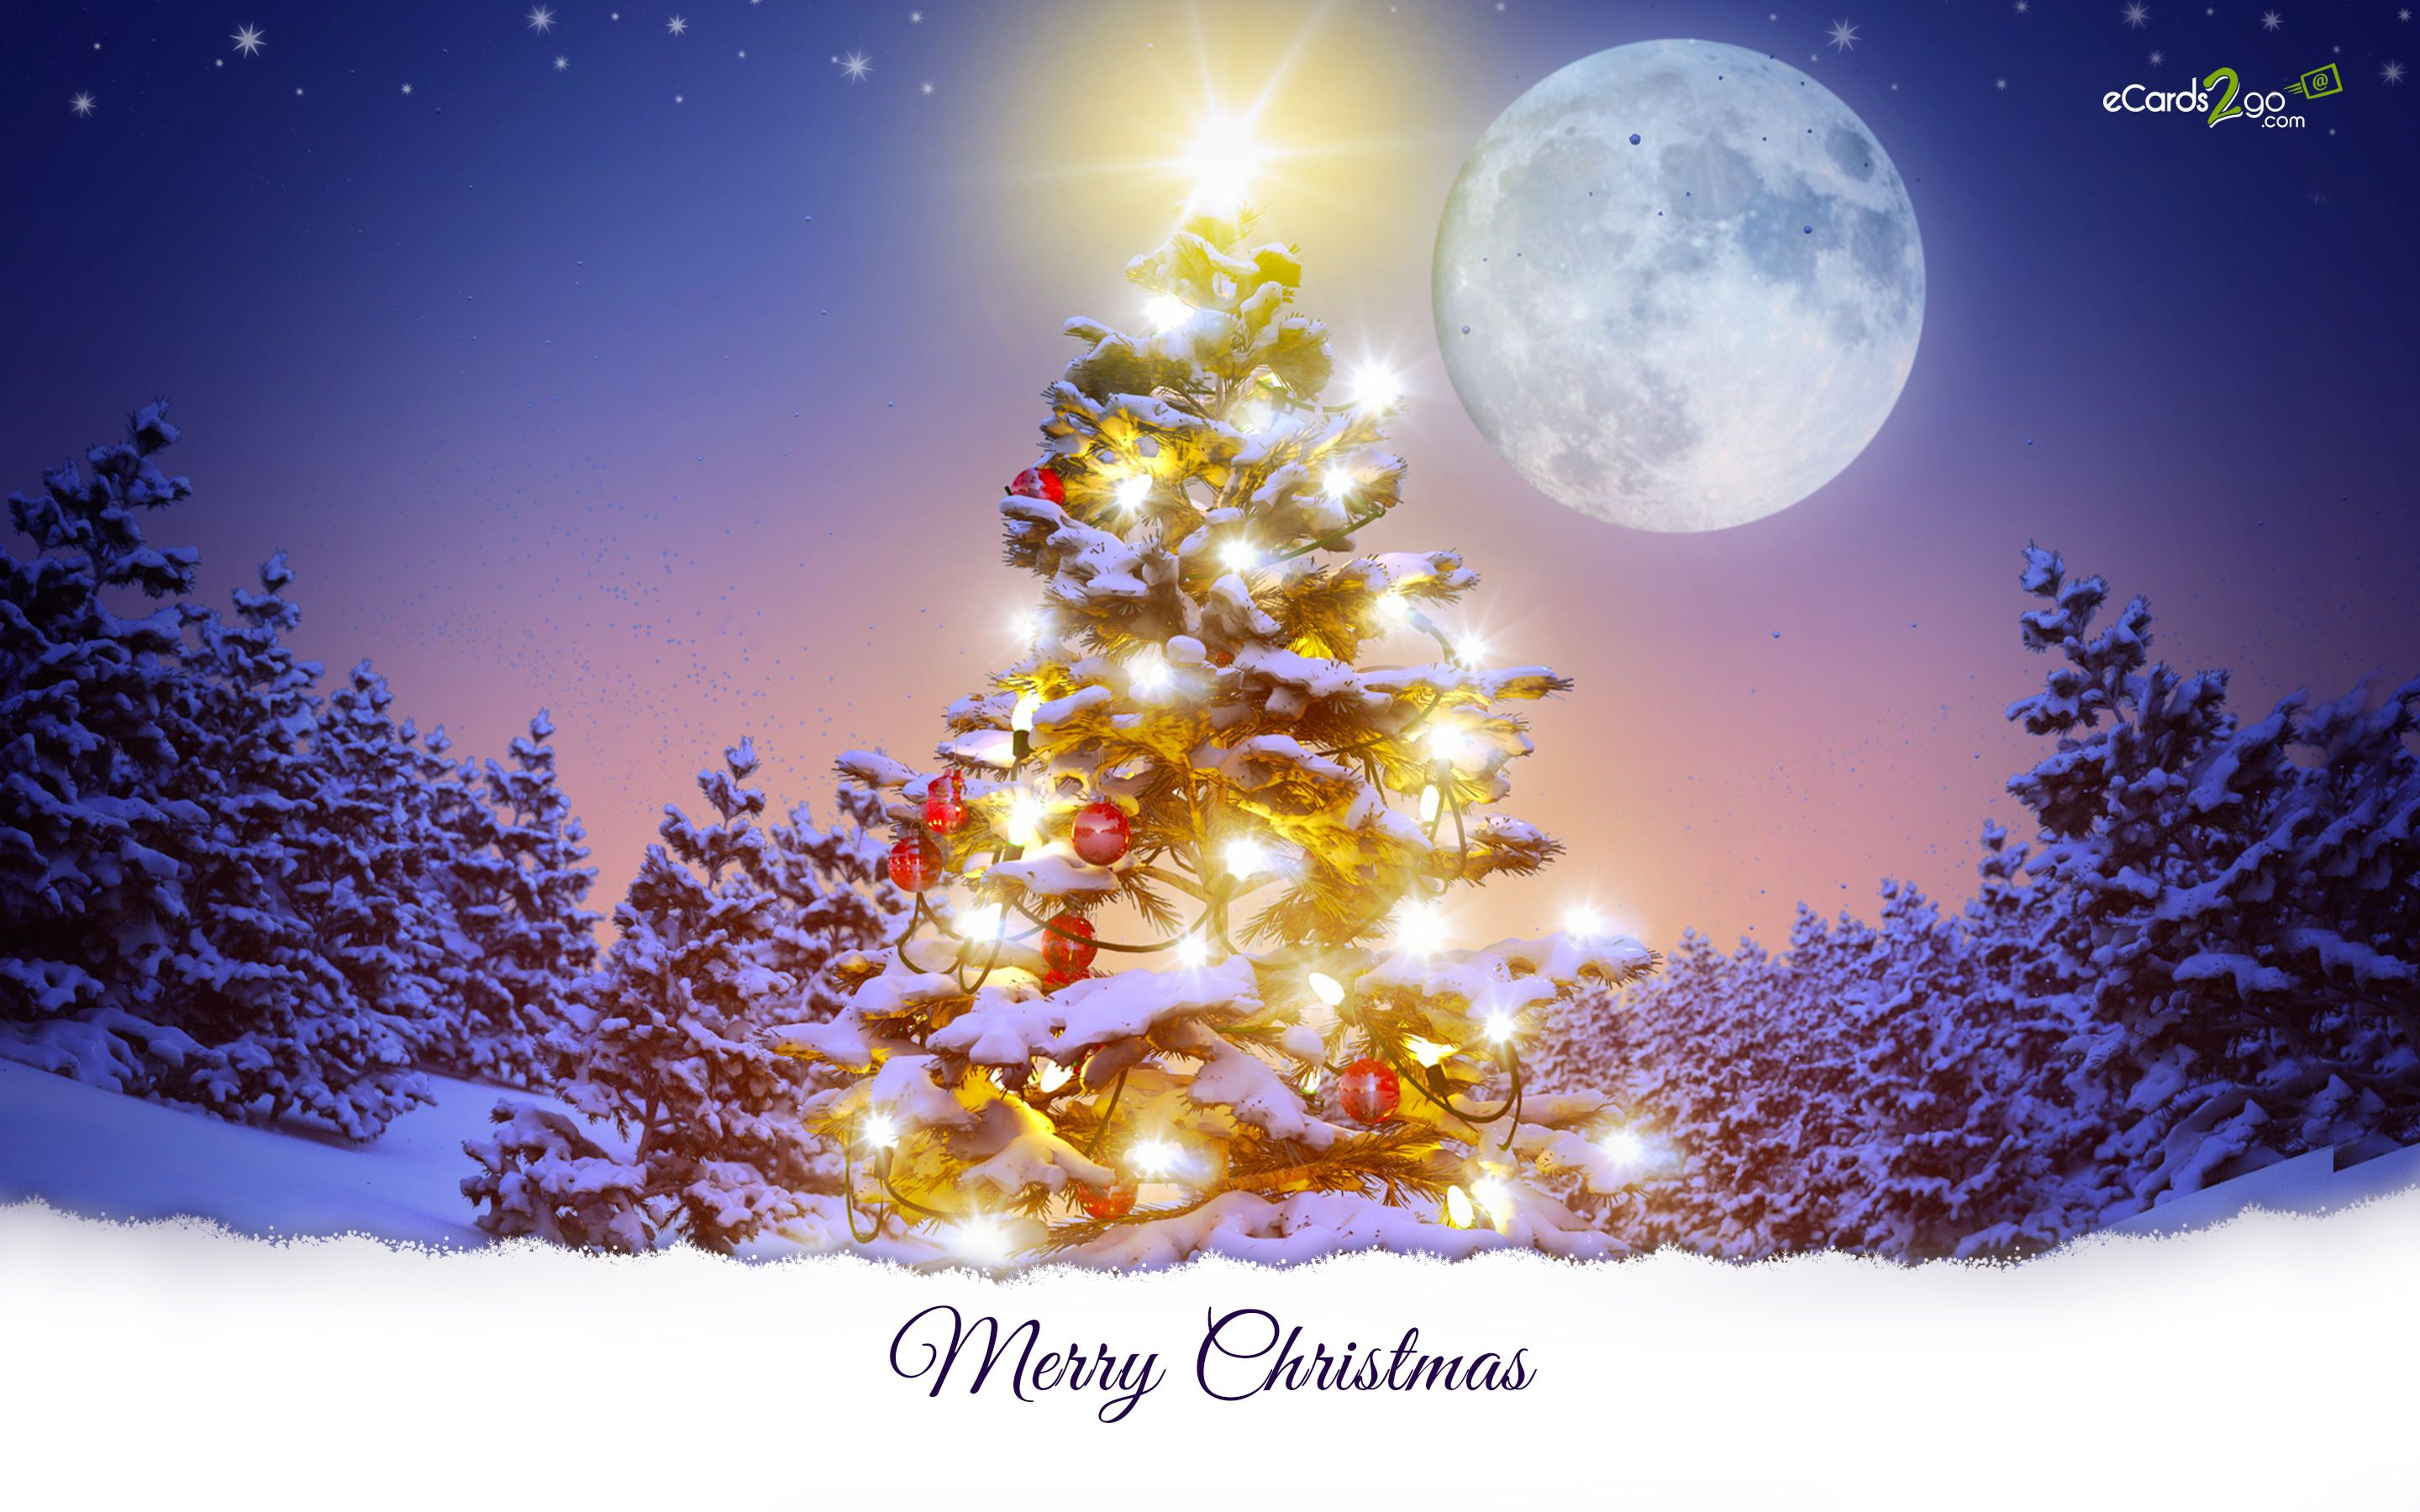 Top 24 Best Free Hd Christmas Wallpapers: Christmas Desktop Wallpapers